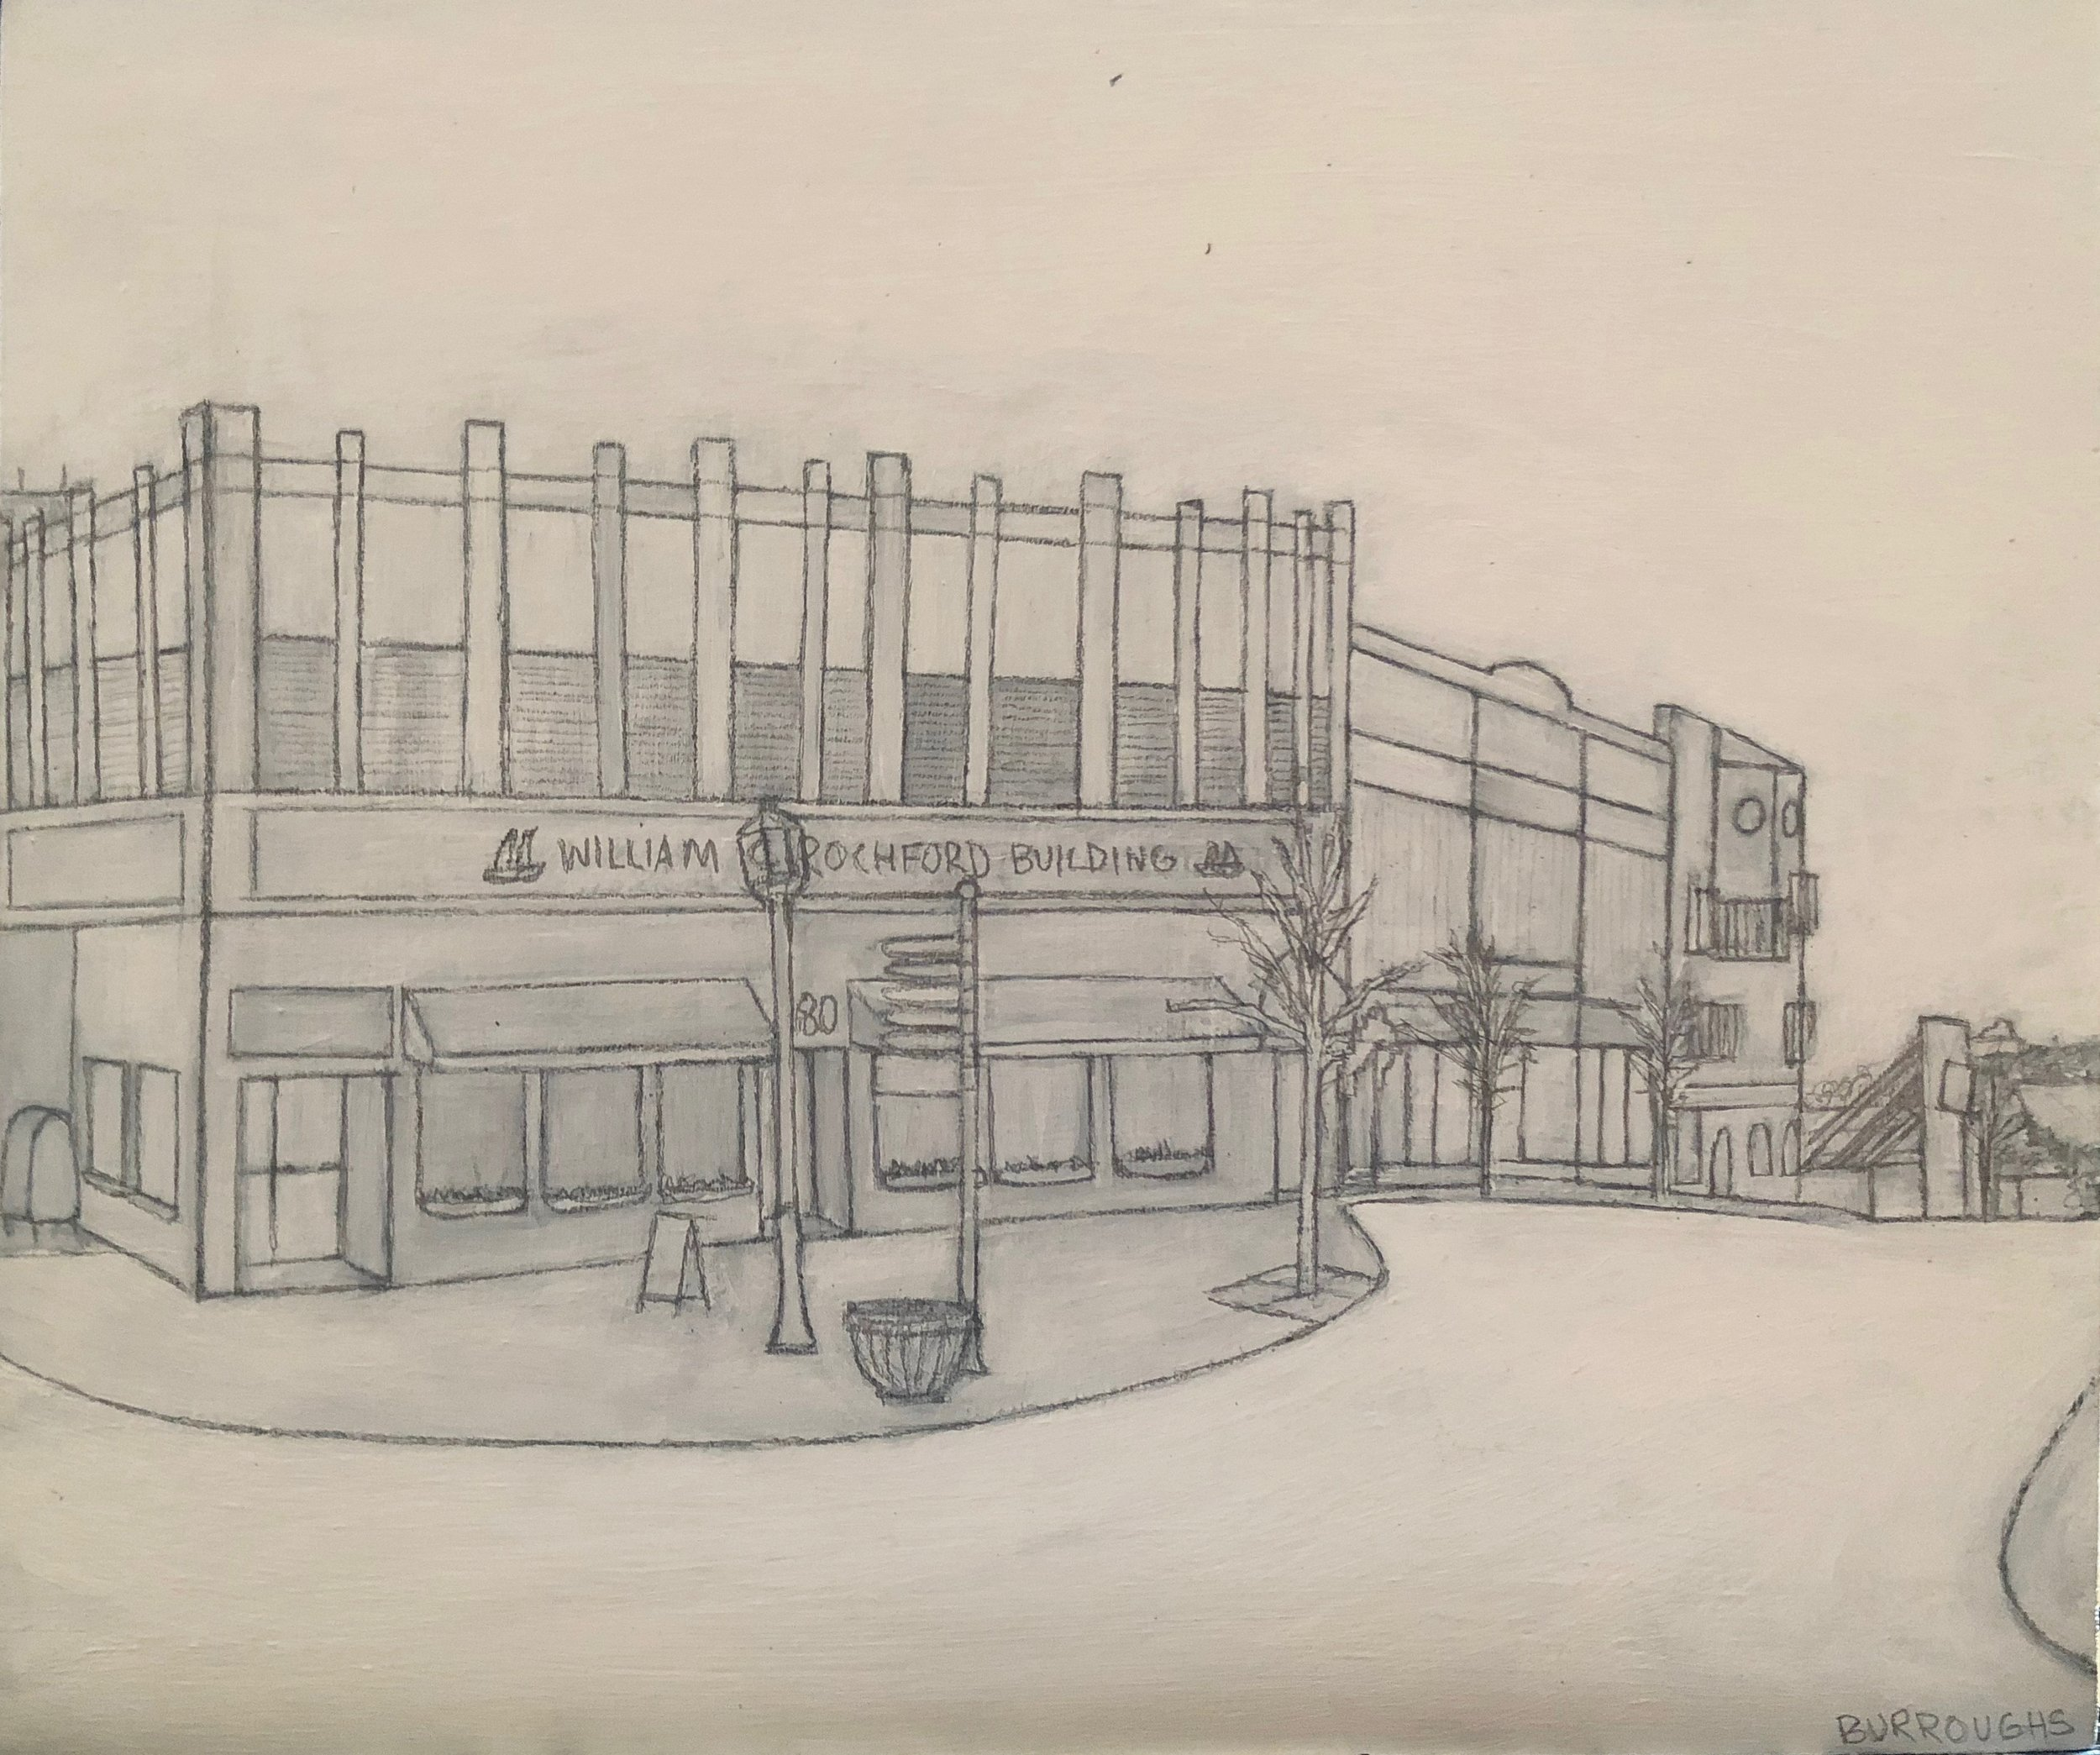 First sketch of Action inc. building